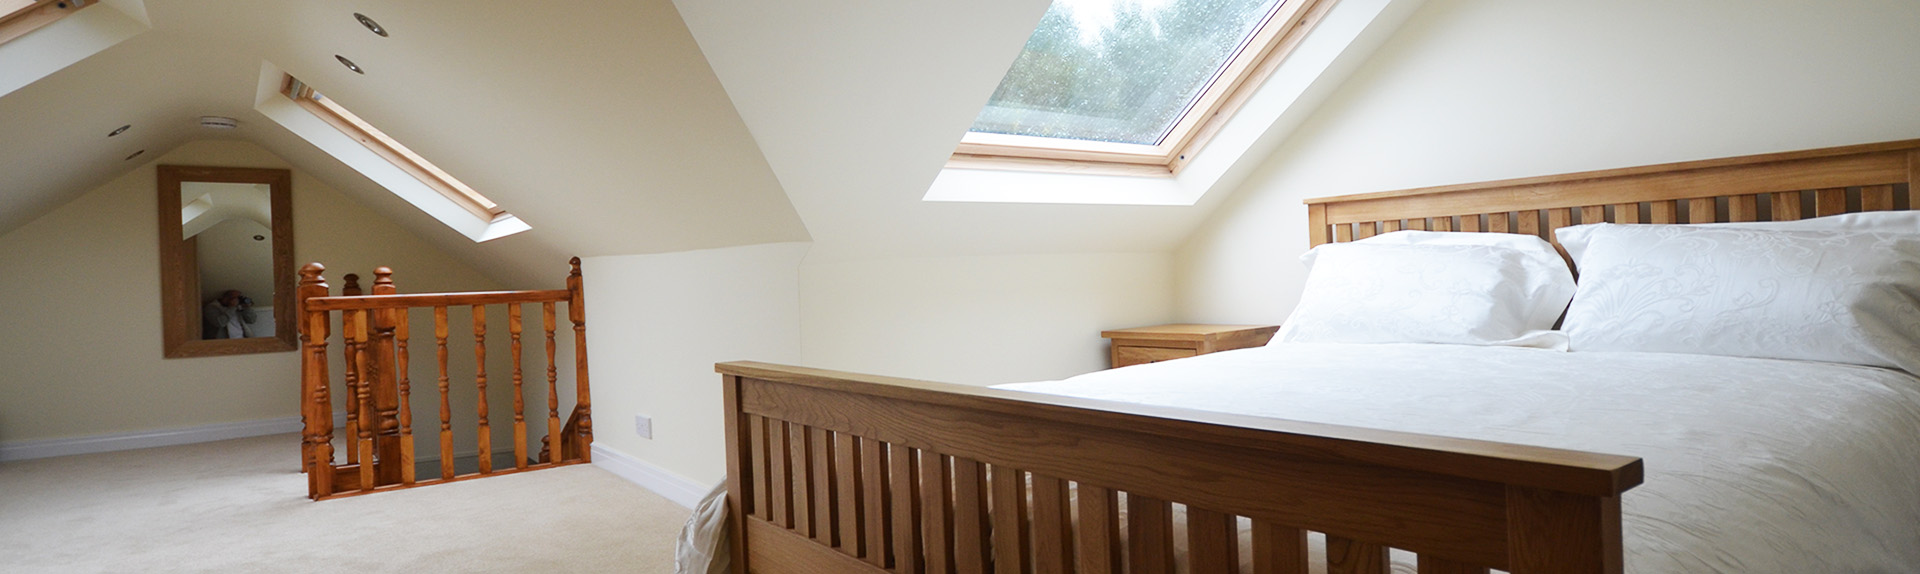 loft-conversions-in-manchester